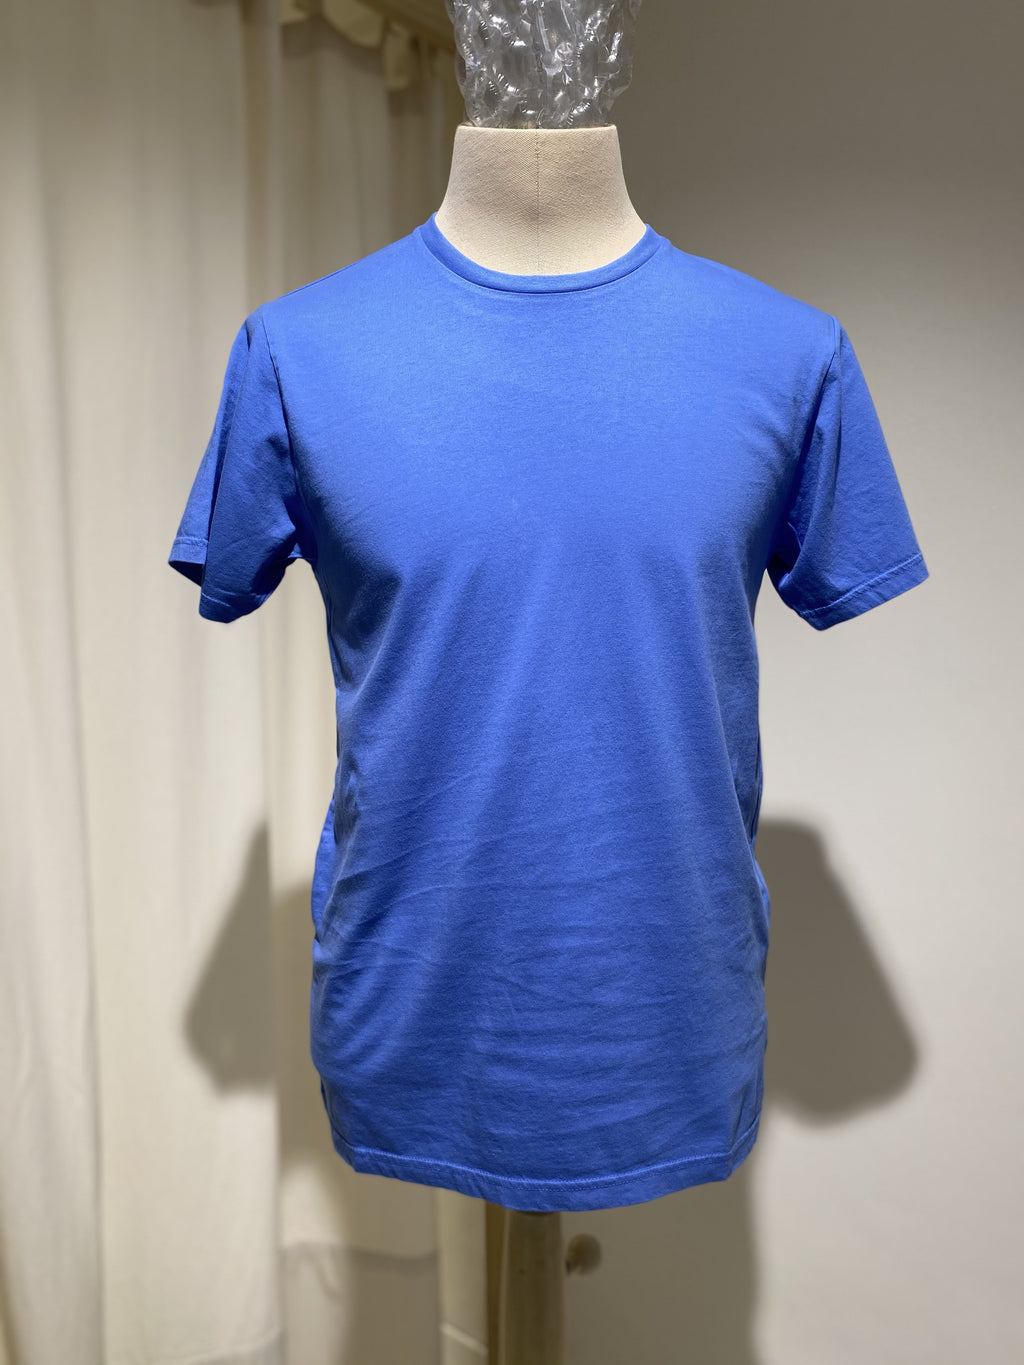 M T-SHIRT COLORFUL STANDARD - SKY BLUE